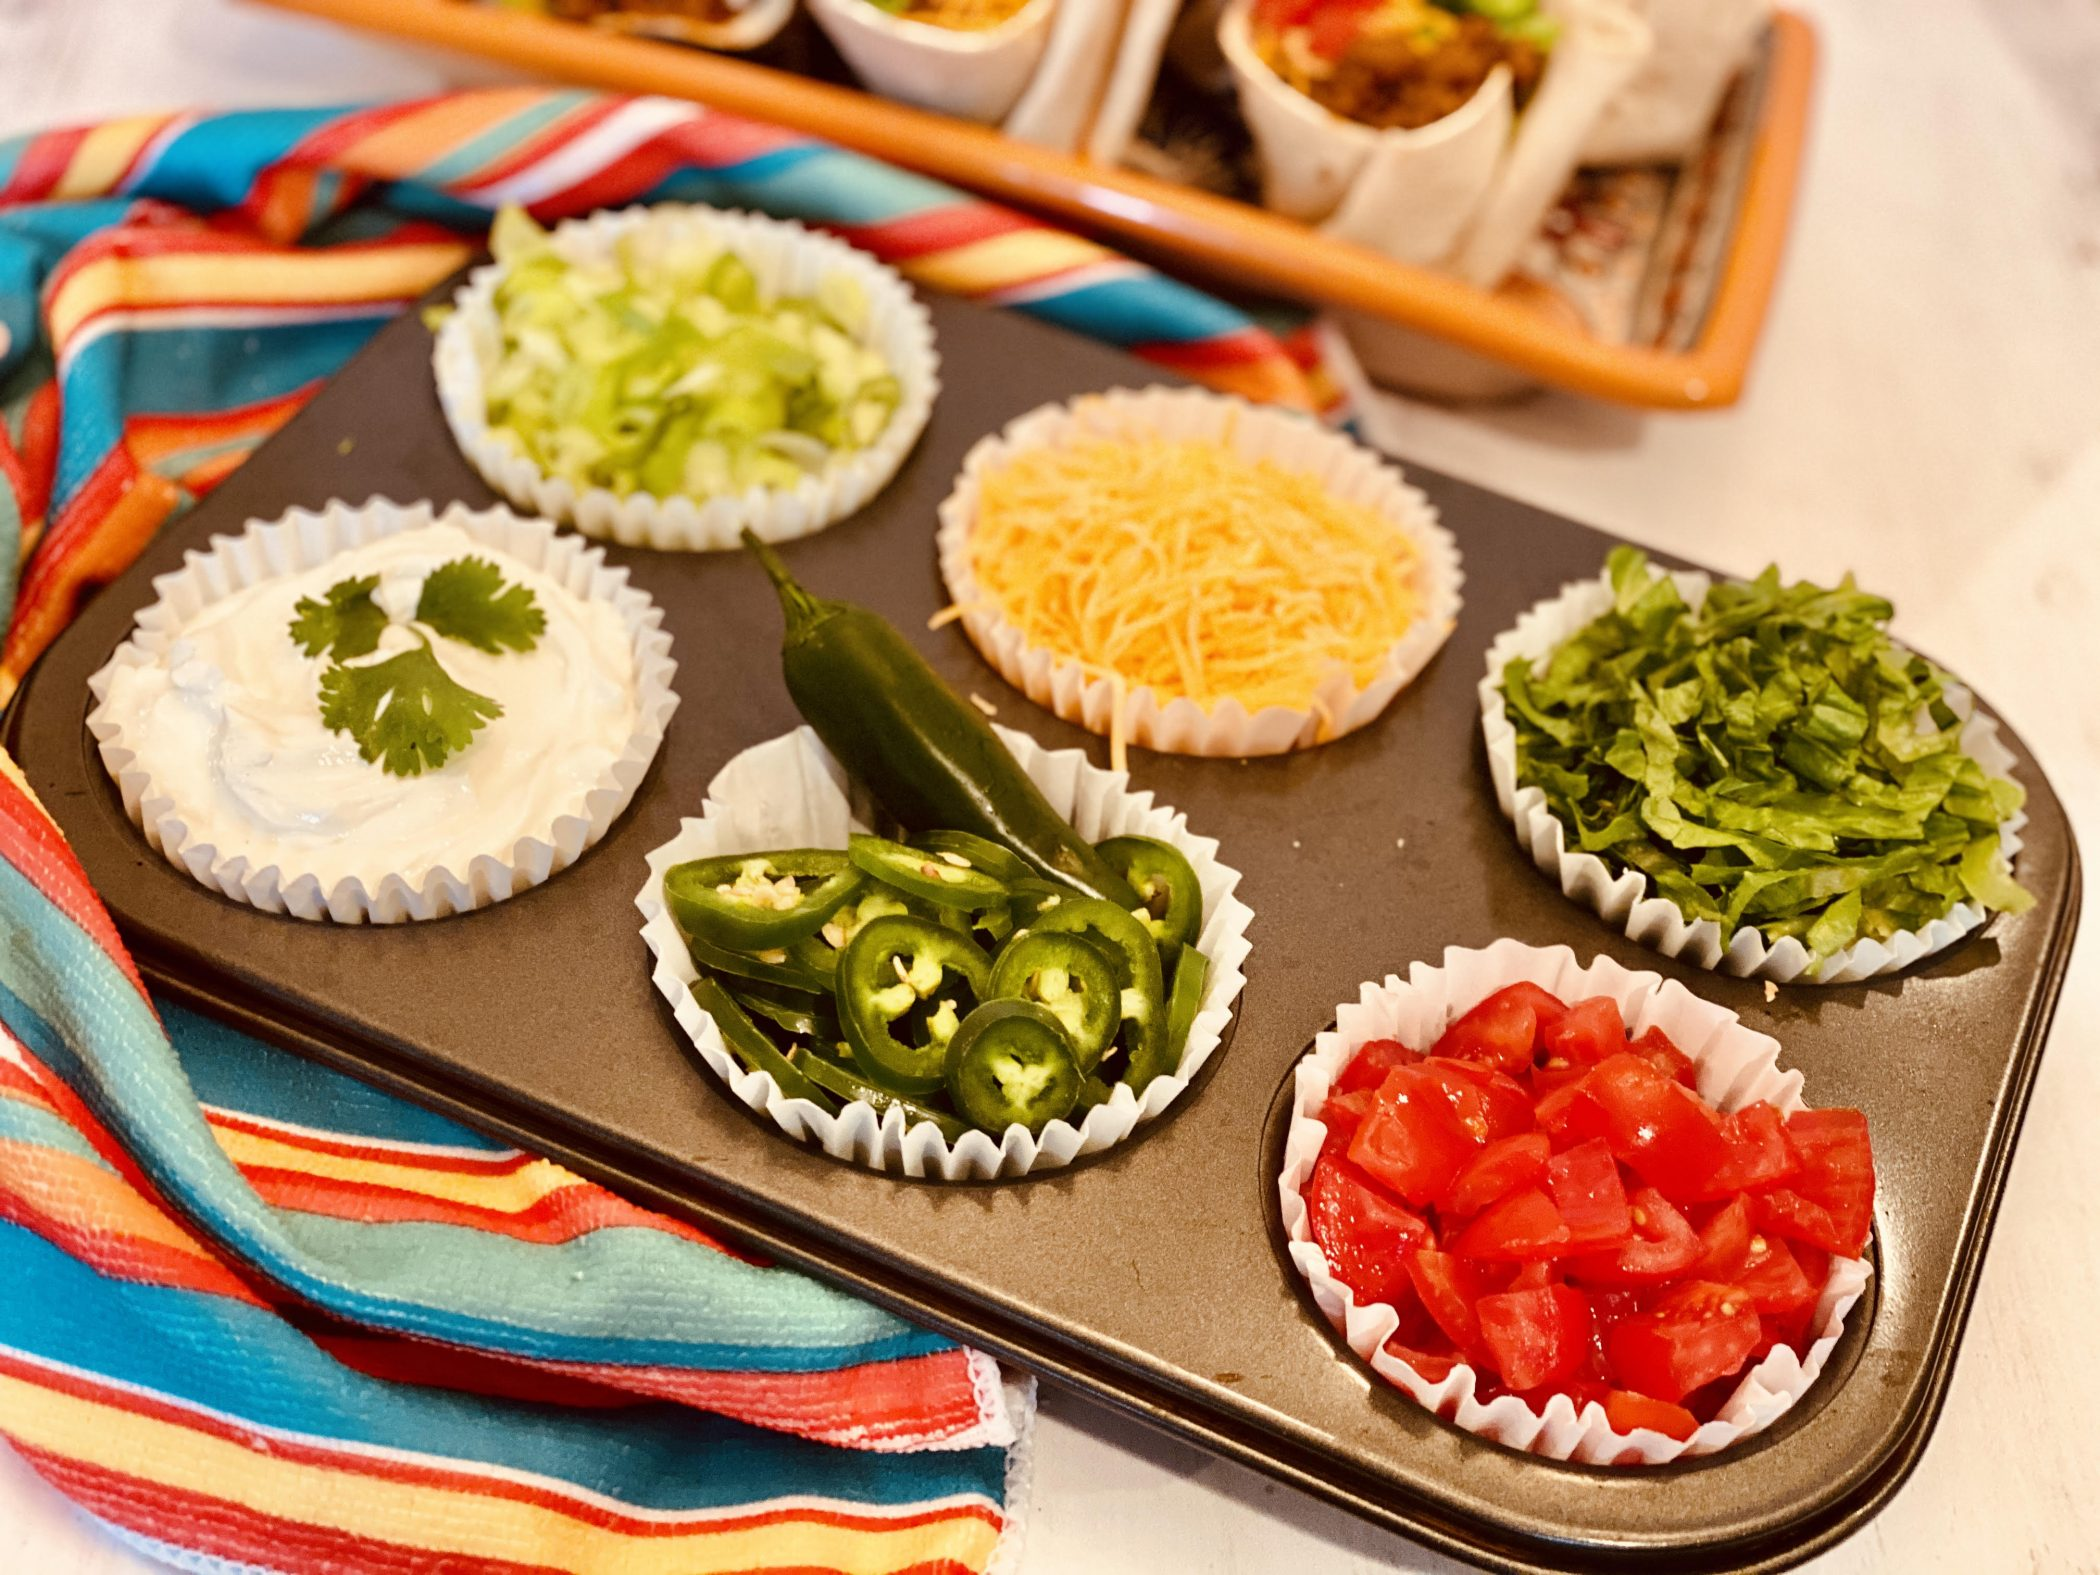 Taco toppings in a cupcake pan